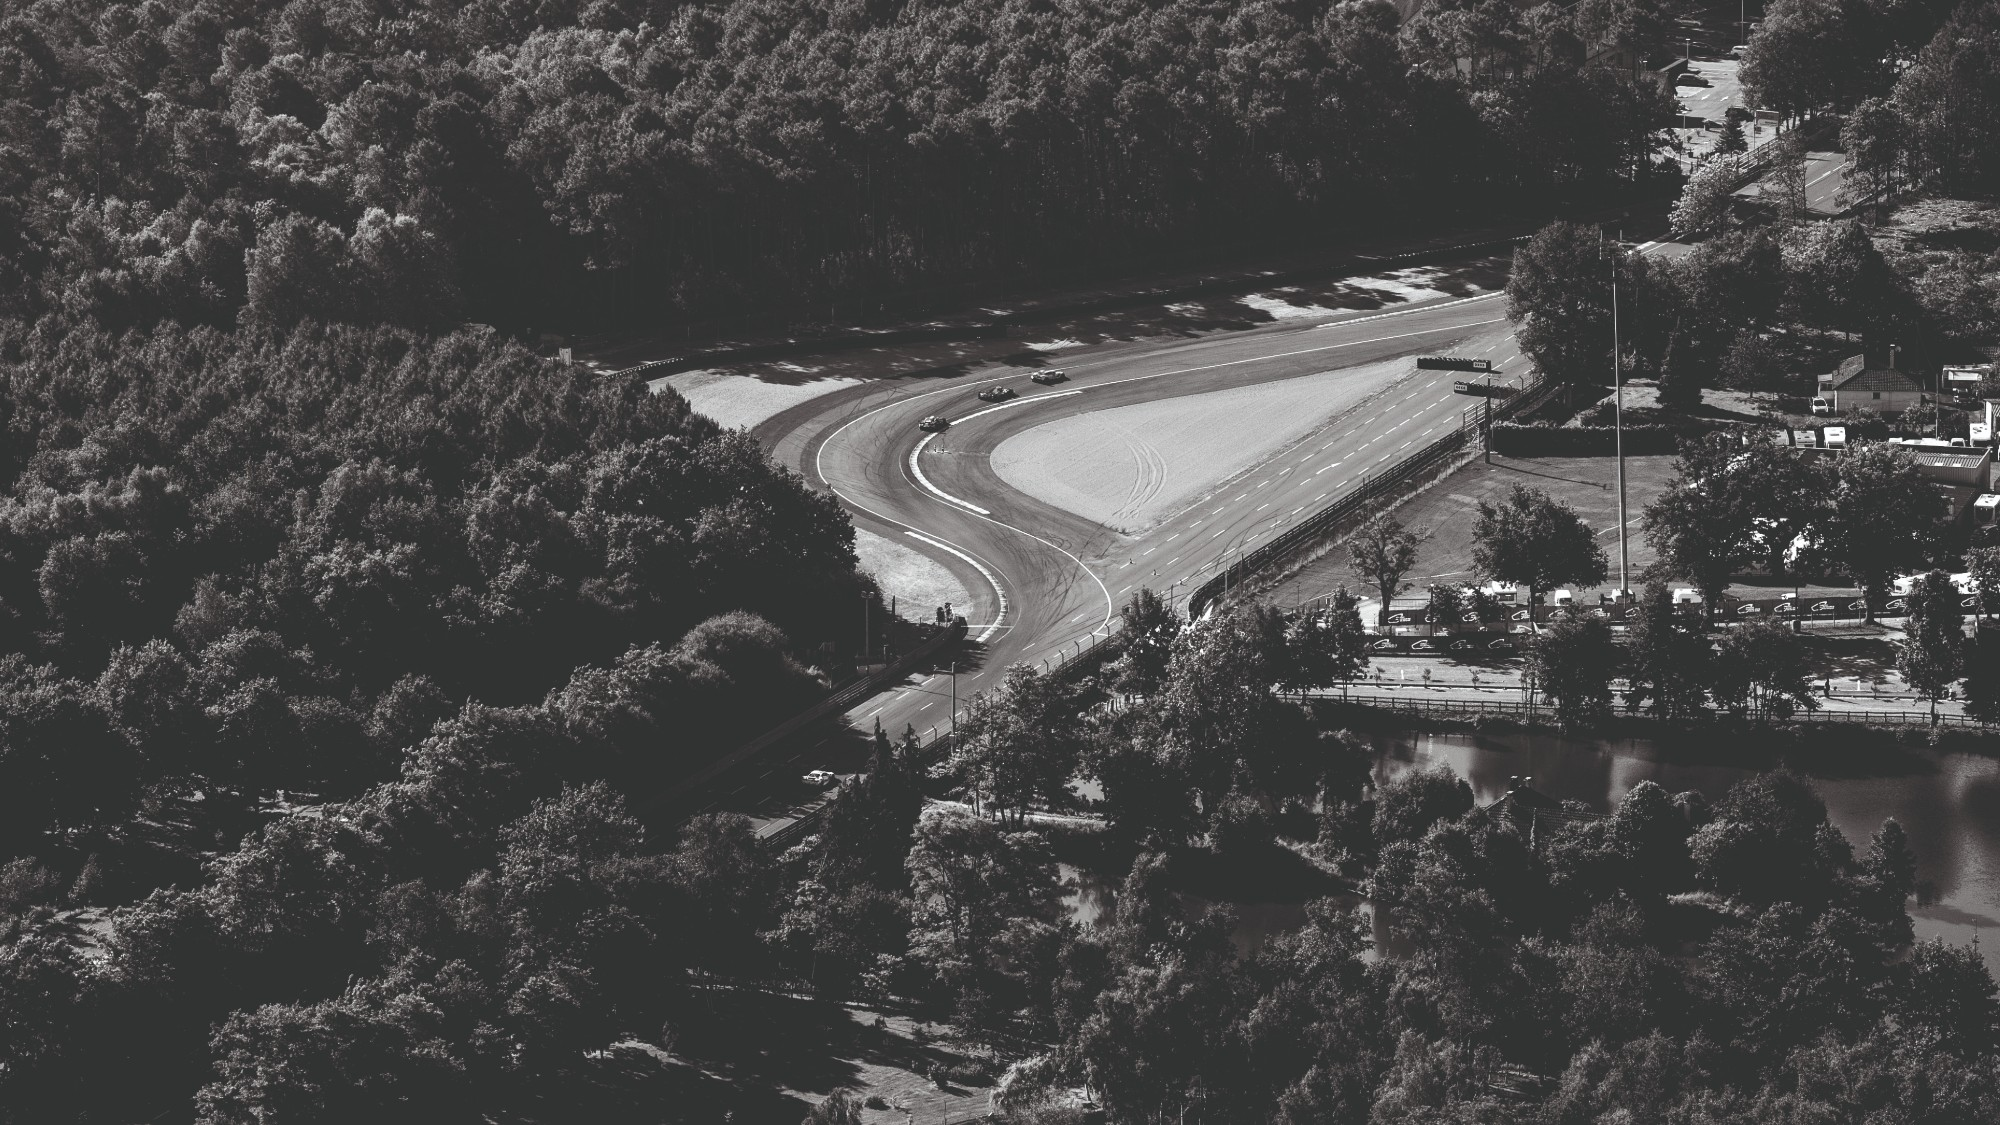 Overhead view of the second chicane on the Mulsanne Straight at Le Mans